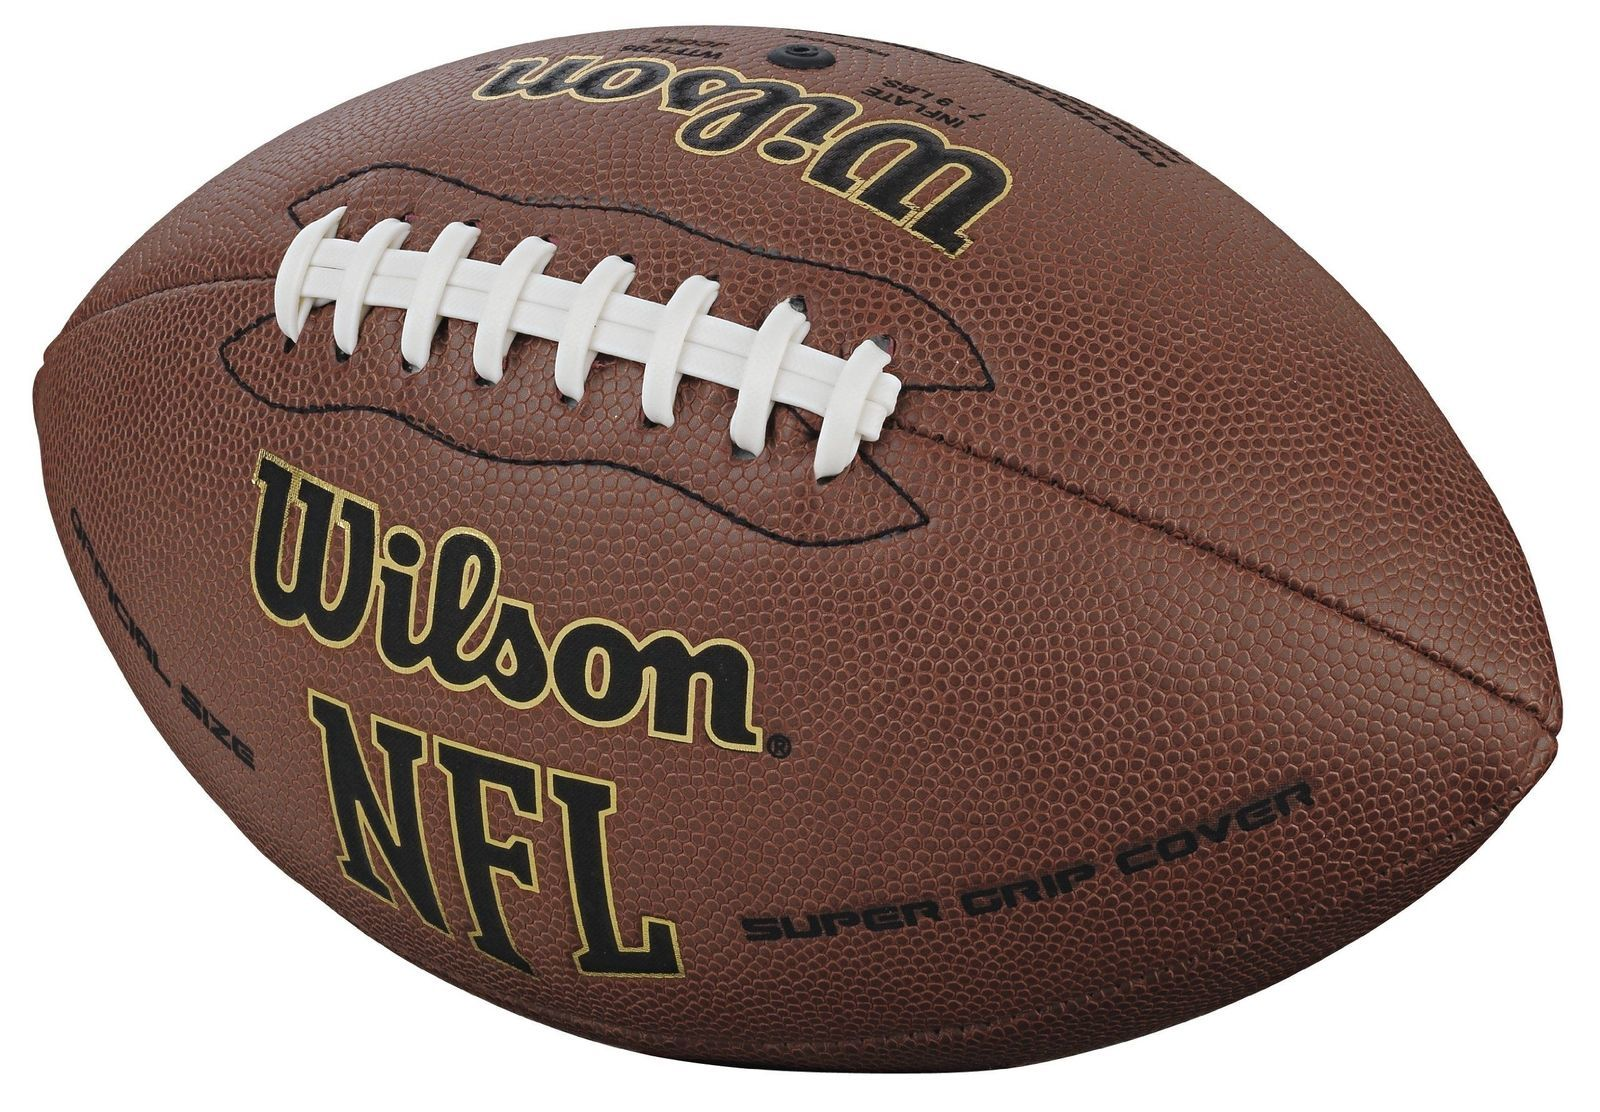 Wilson NFL Football Official Size Super Grip and similar items. 10 59a588bfb